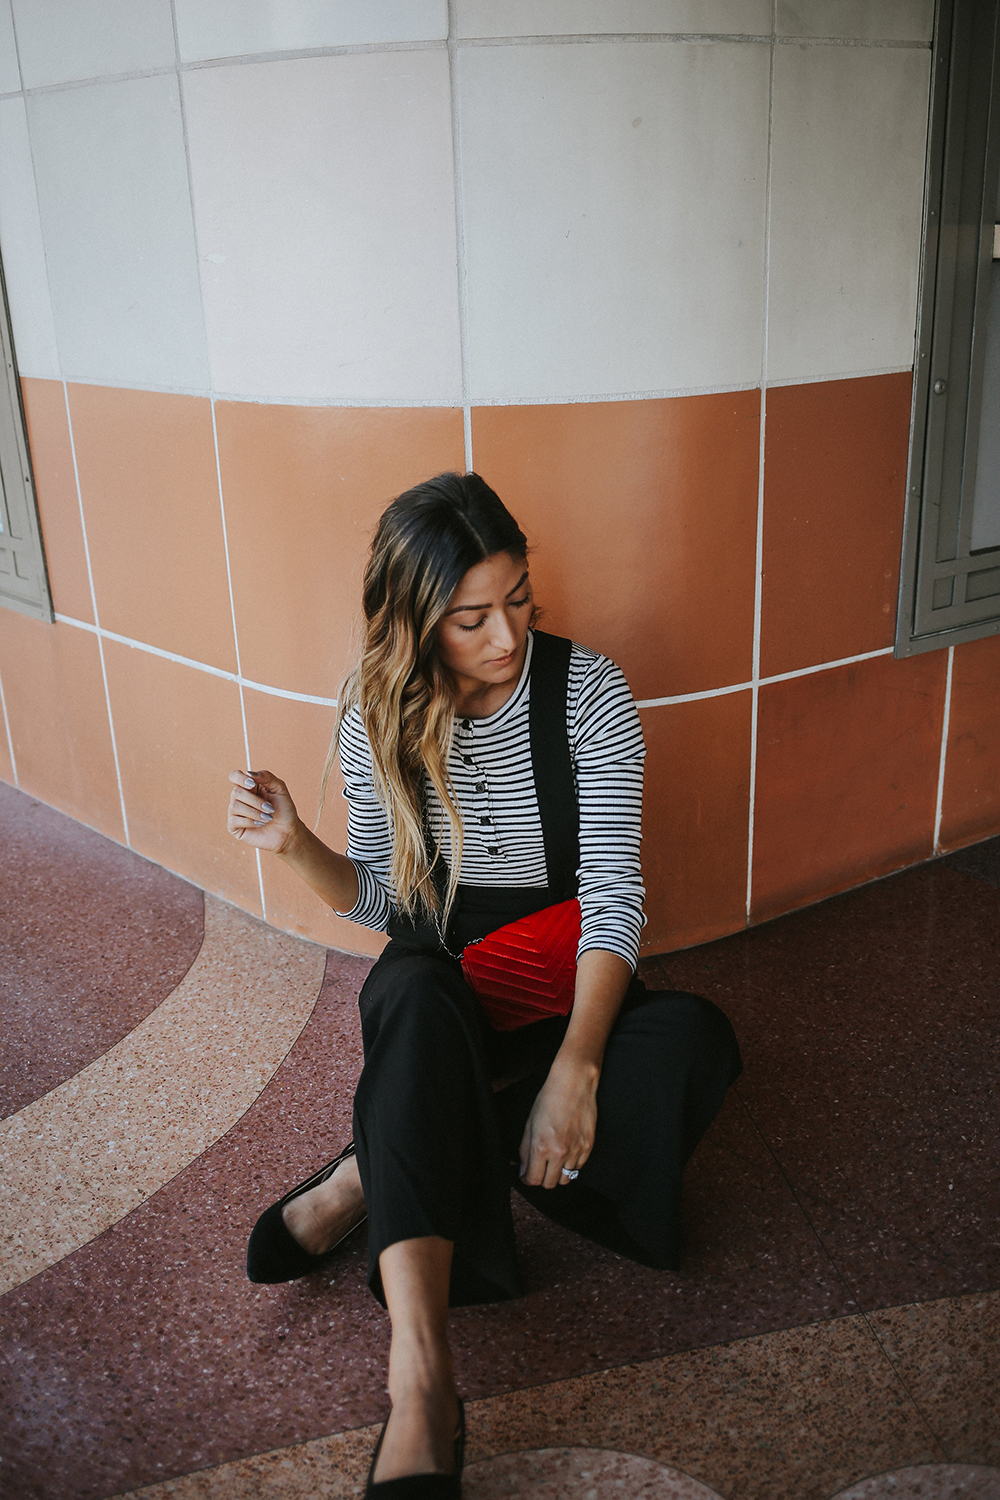 Fame and Partners Parisian Vibes, fame and partners jumpsuit, fame and partners, jumpsuit, red, ootd, style, melrodstyle, street style, culver city, whittier blogger, la blogger, latina blogger, mexican blogger, hispanic blogger, fall style, parisian vibes